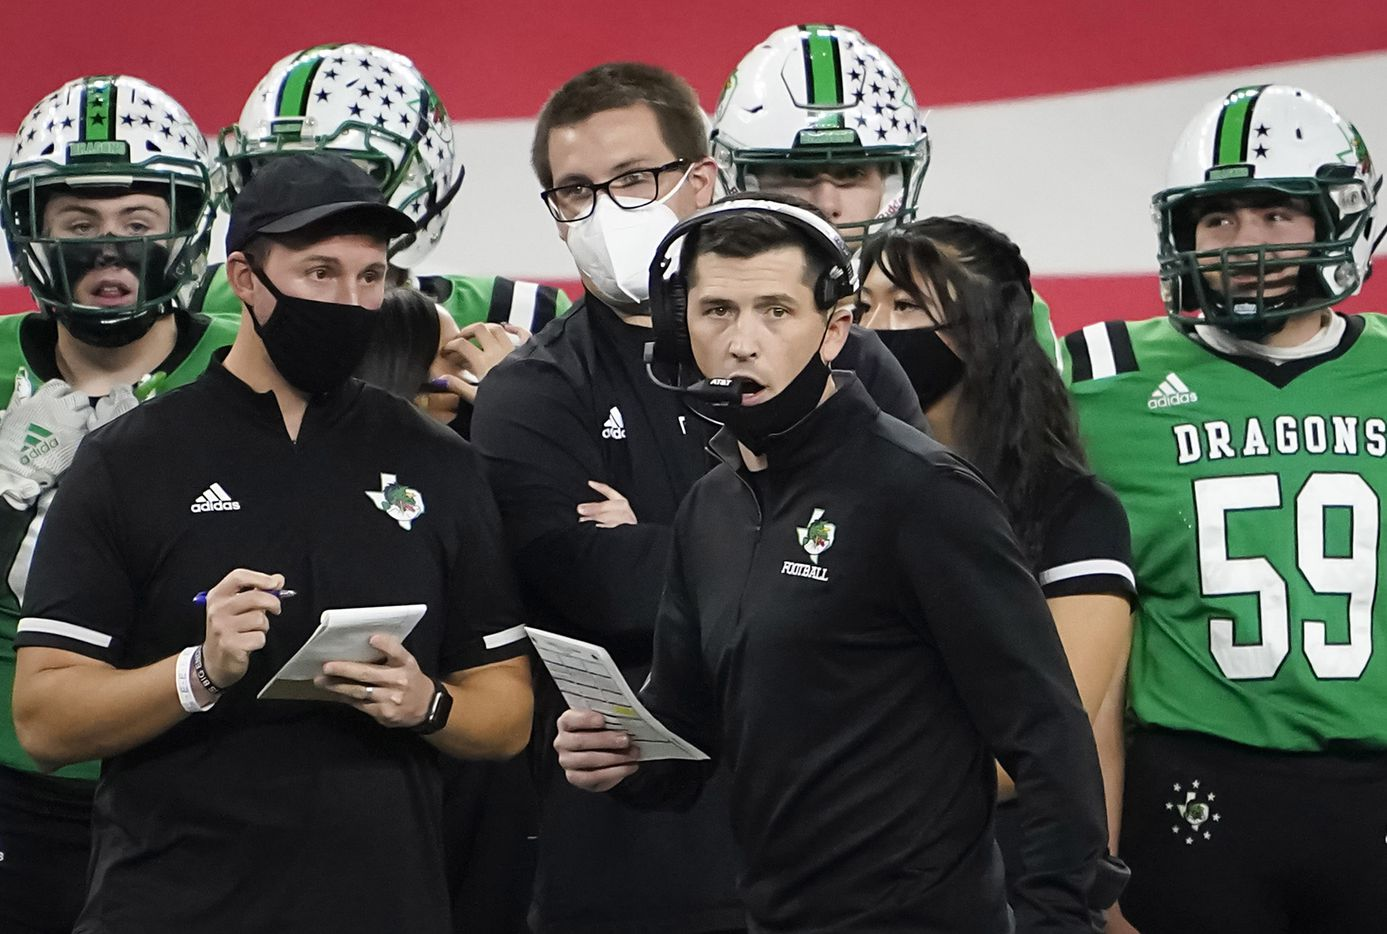 Southlake Carroll head coach Riley Dodge calls in a play during the first quarter of the Class 6A Division I state football championship game against Austin Westlake at AT&T Stadium on Saturday, Jan. 16, 2021, in Arlington, Texas.